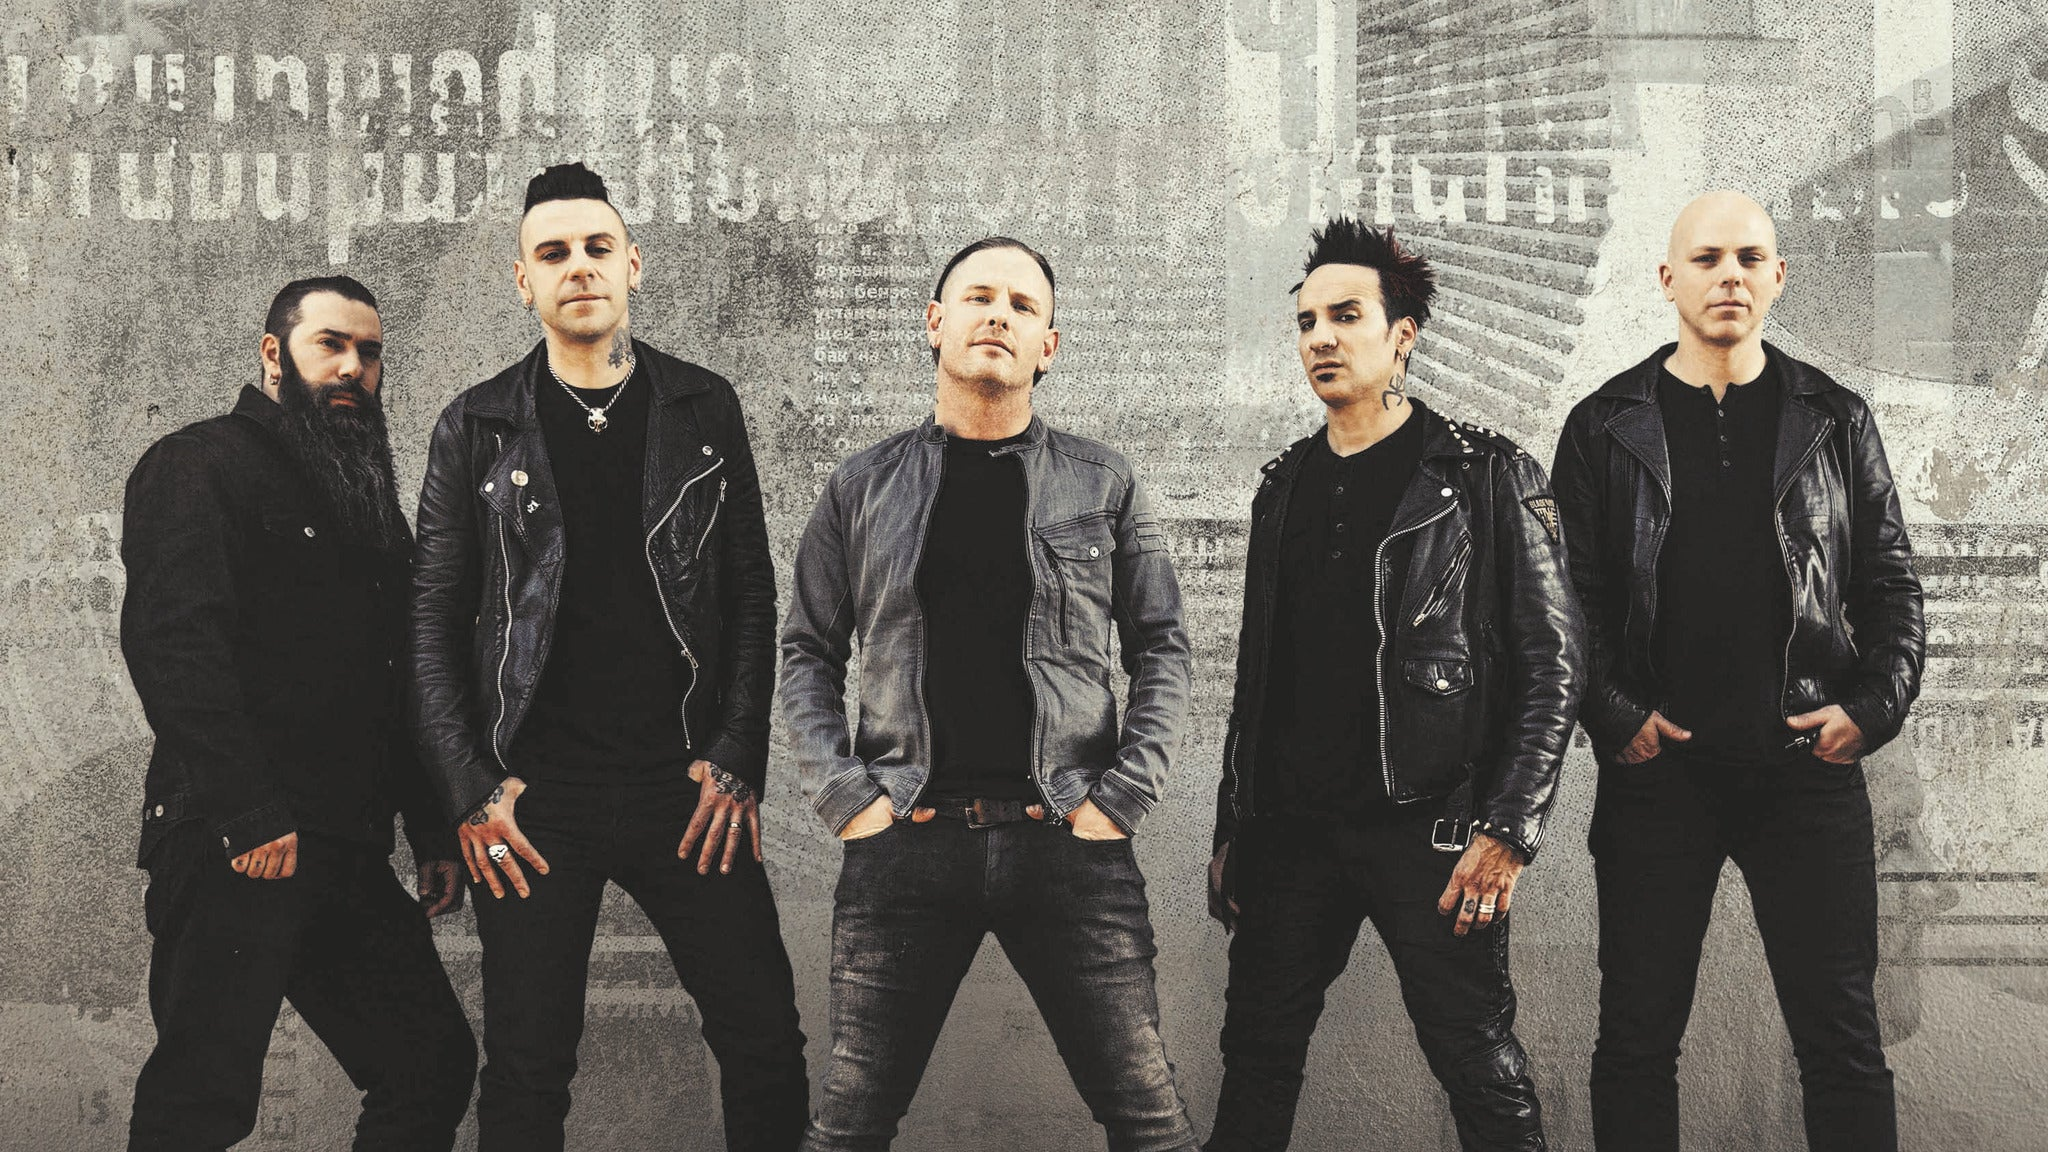 Stone Sour - Upgrade VIP Packages at Hollywood Bowl